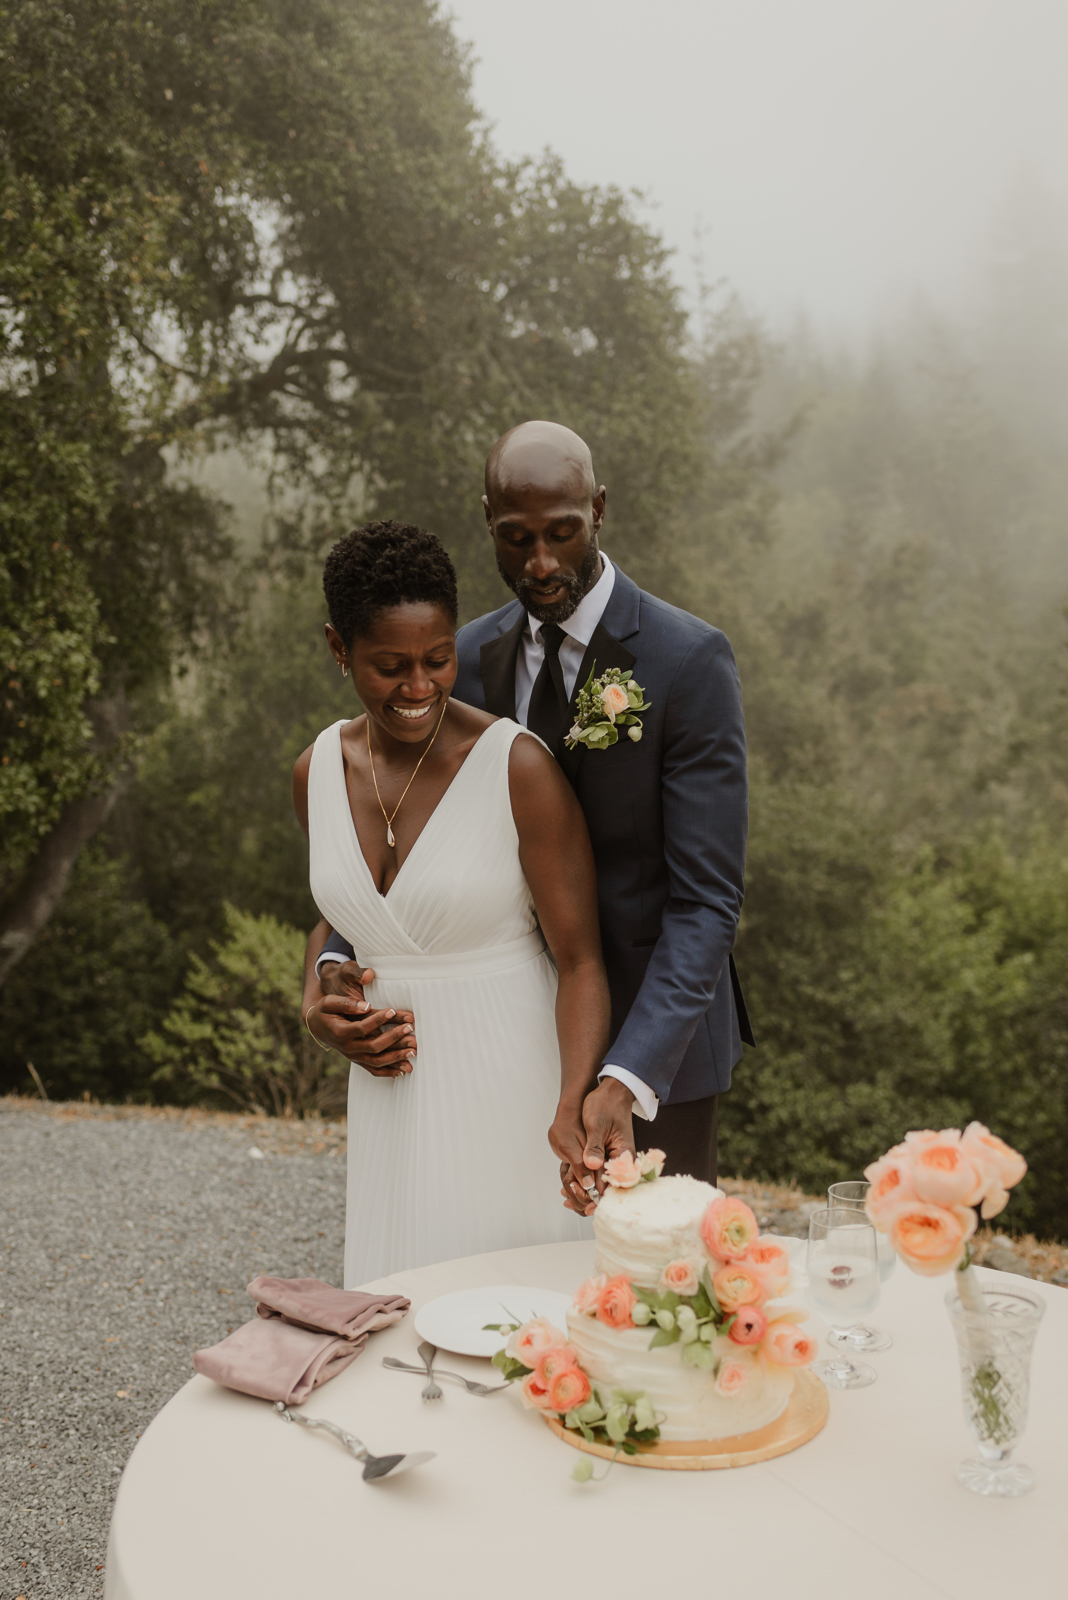 bride and groom cutting cake with foggy forest background